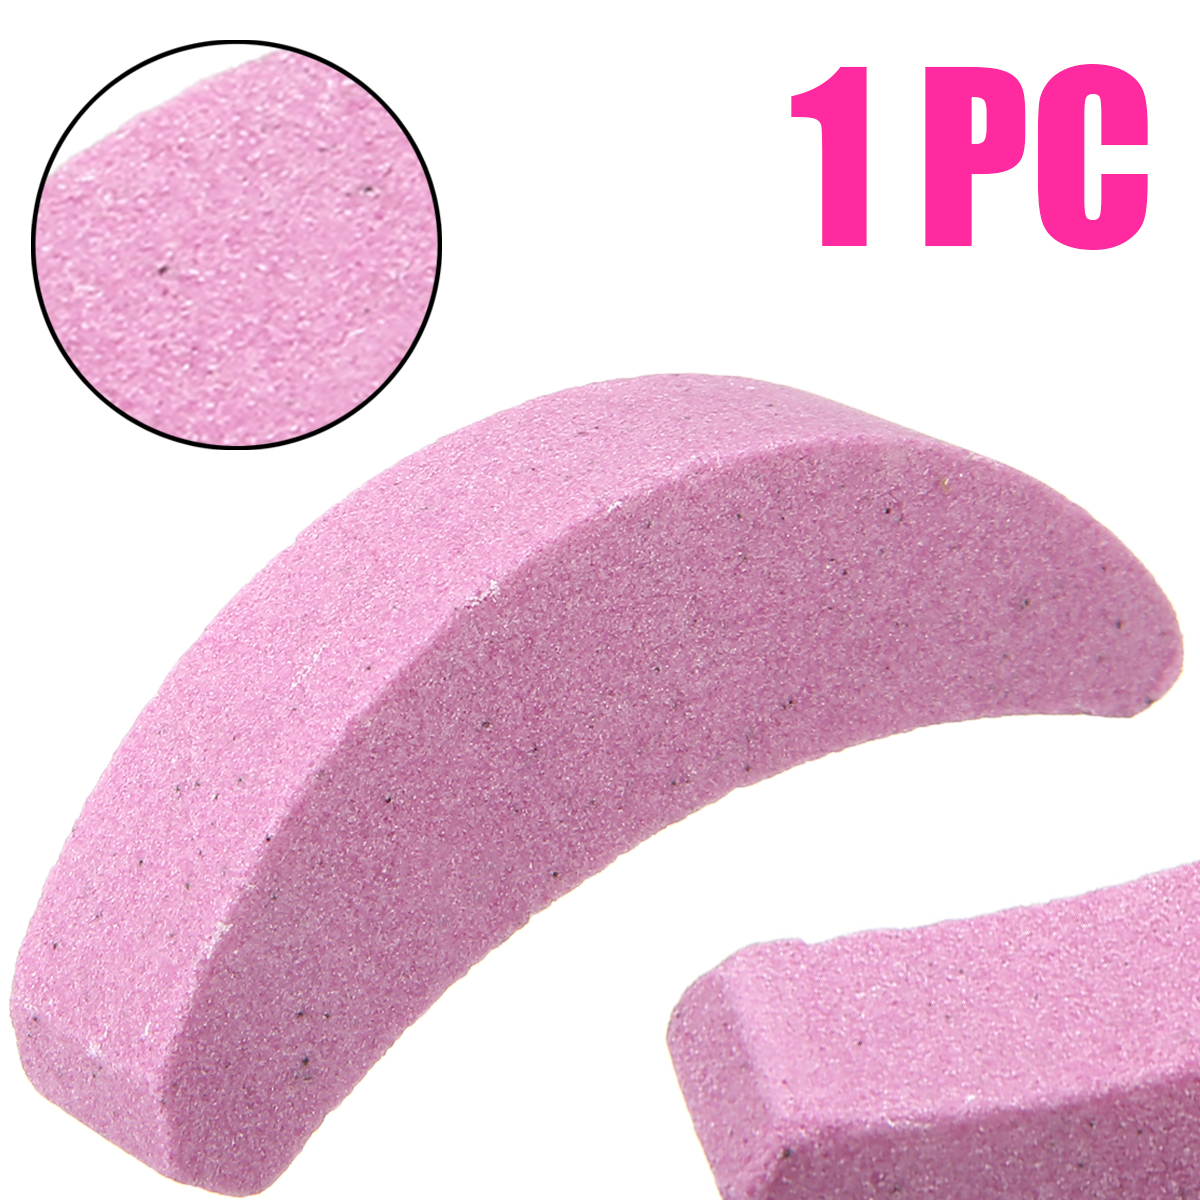 New Moon Type Grinding Chain Saw Teeth Sharpener Tool Whetstone Saw Chain Sanding Stone For Woodworking Abrasive Tools